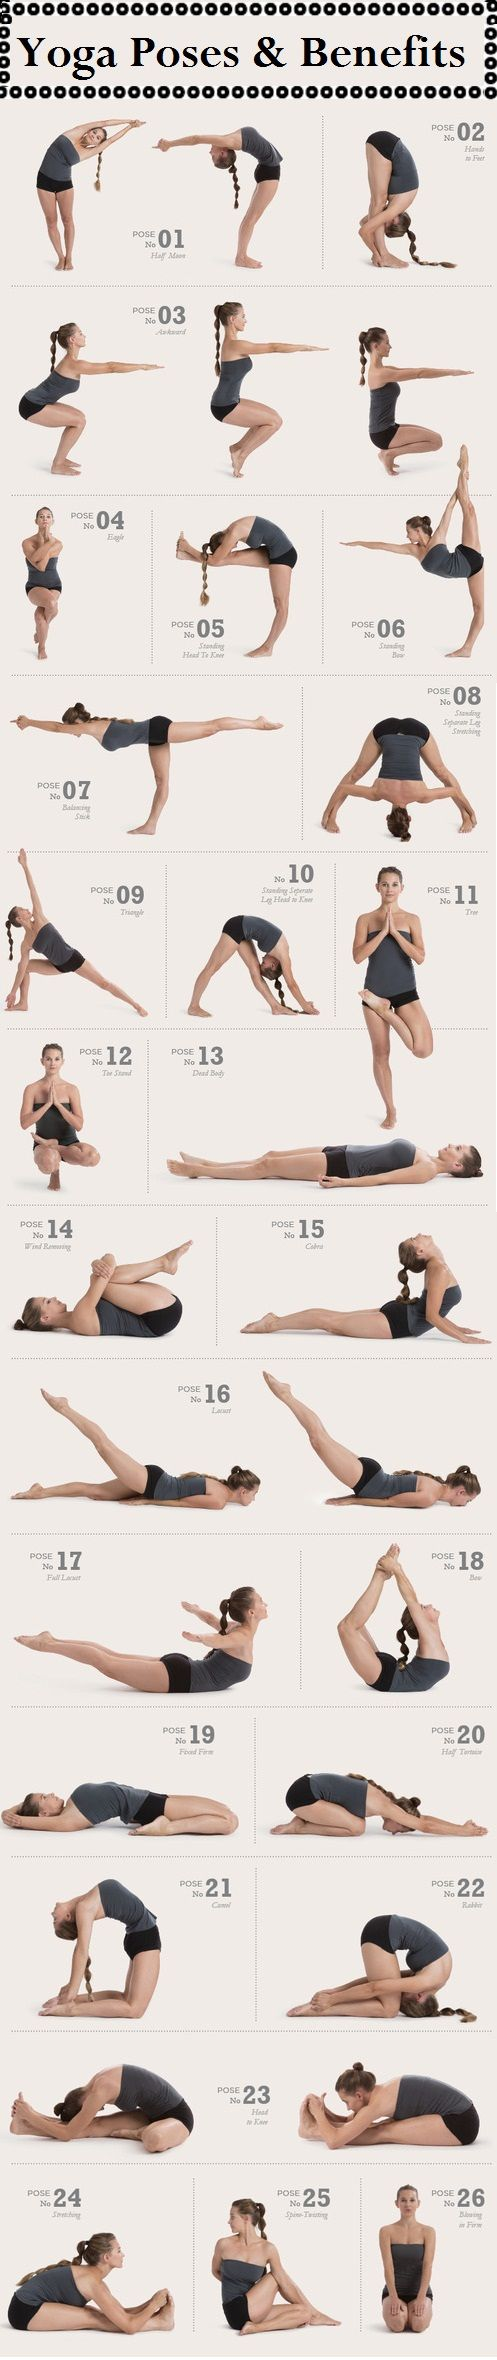 Yoga Poses & Benefits #fitness #wellness